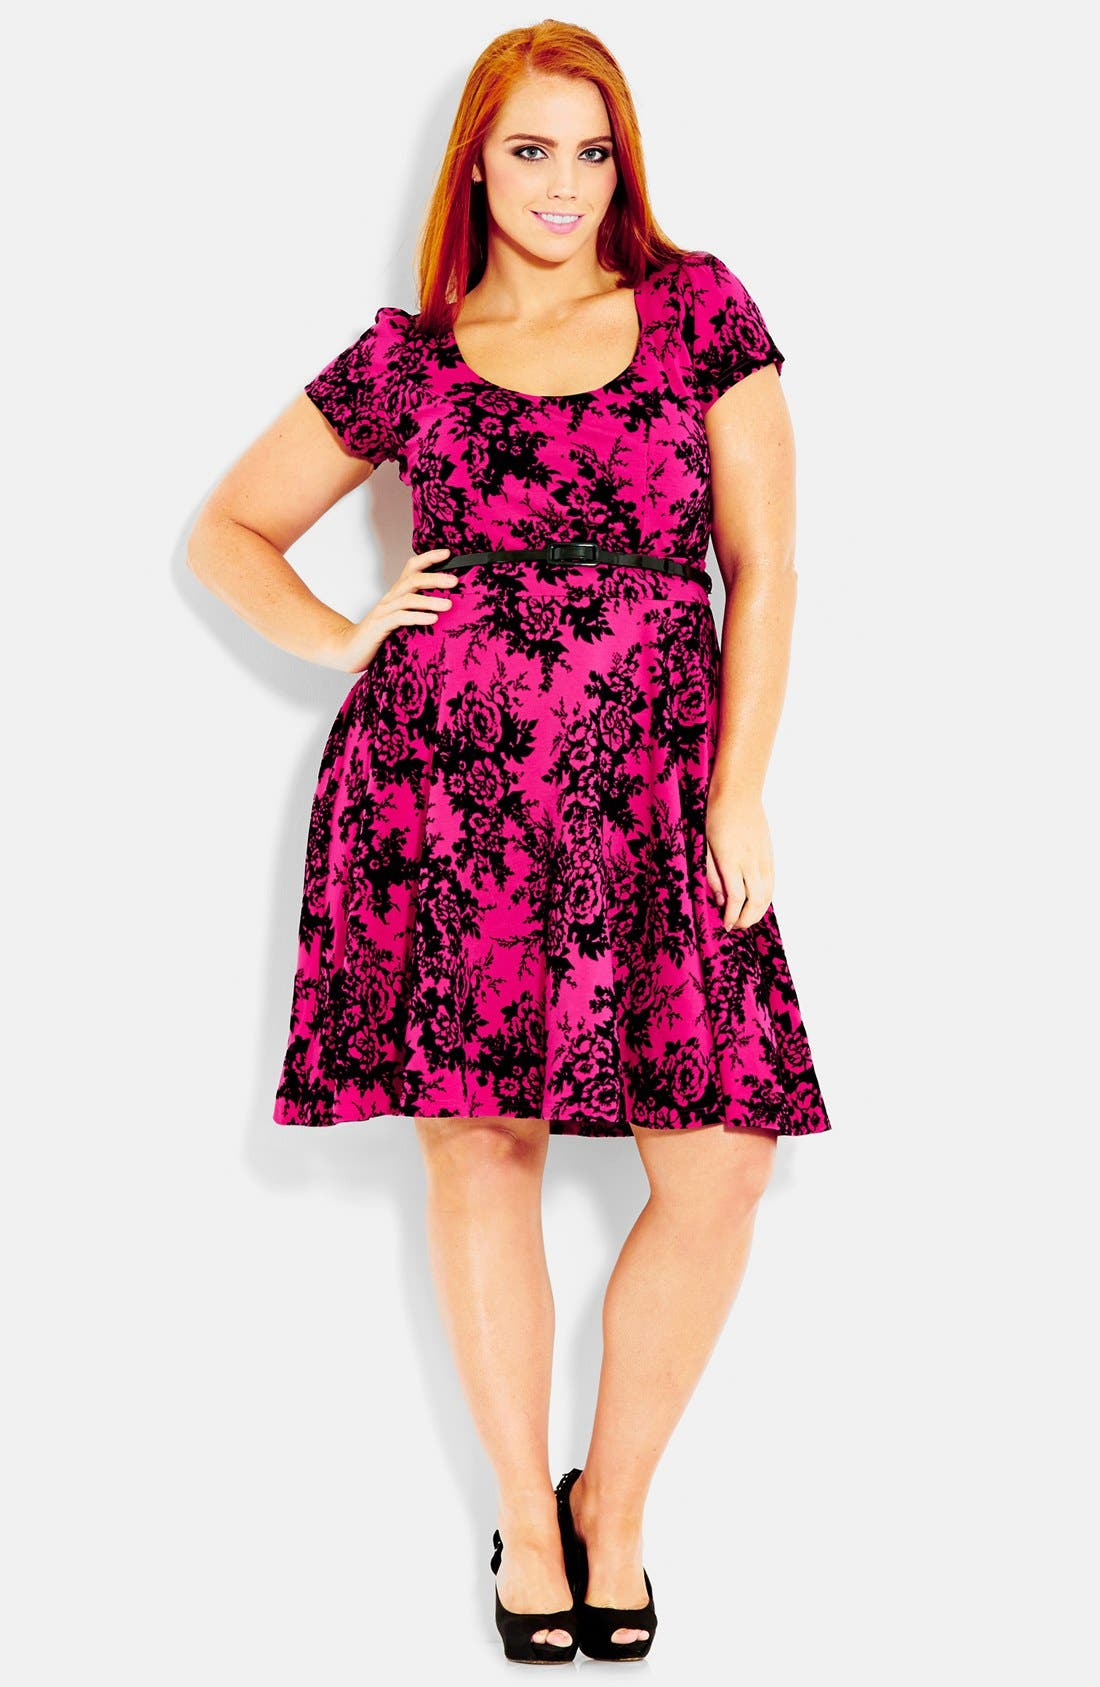 Alternate Image 1 Selected - City Chic Flocked Fit & Flare Dress (Plus Size)